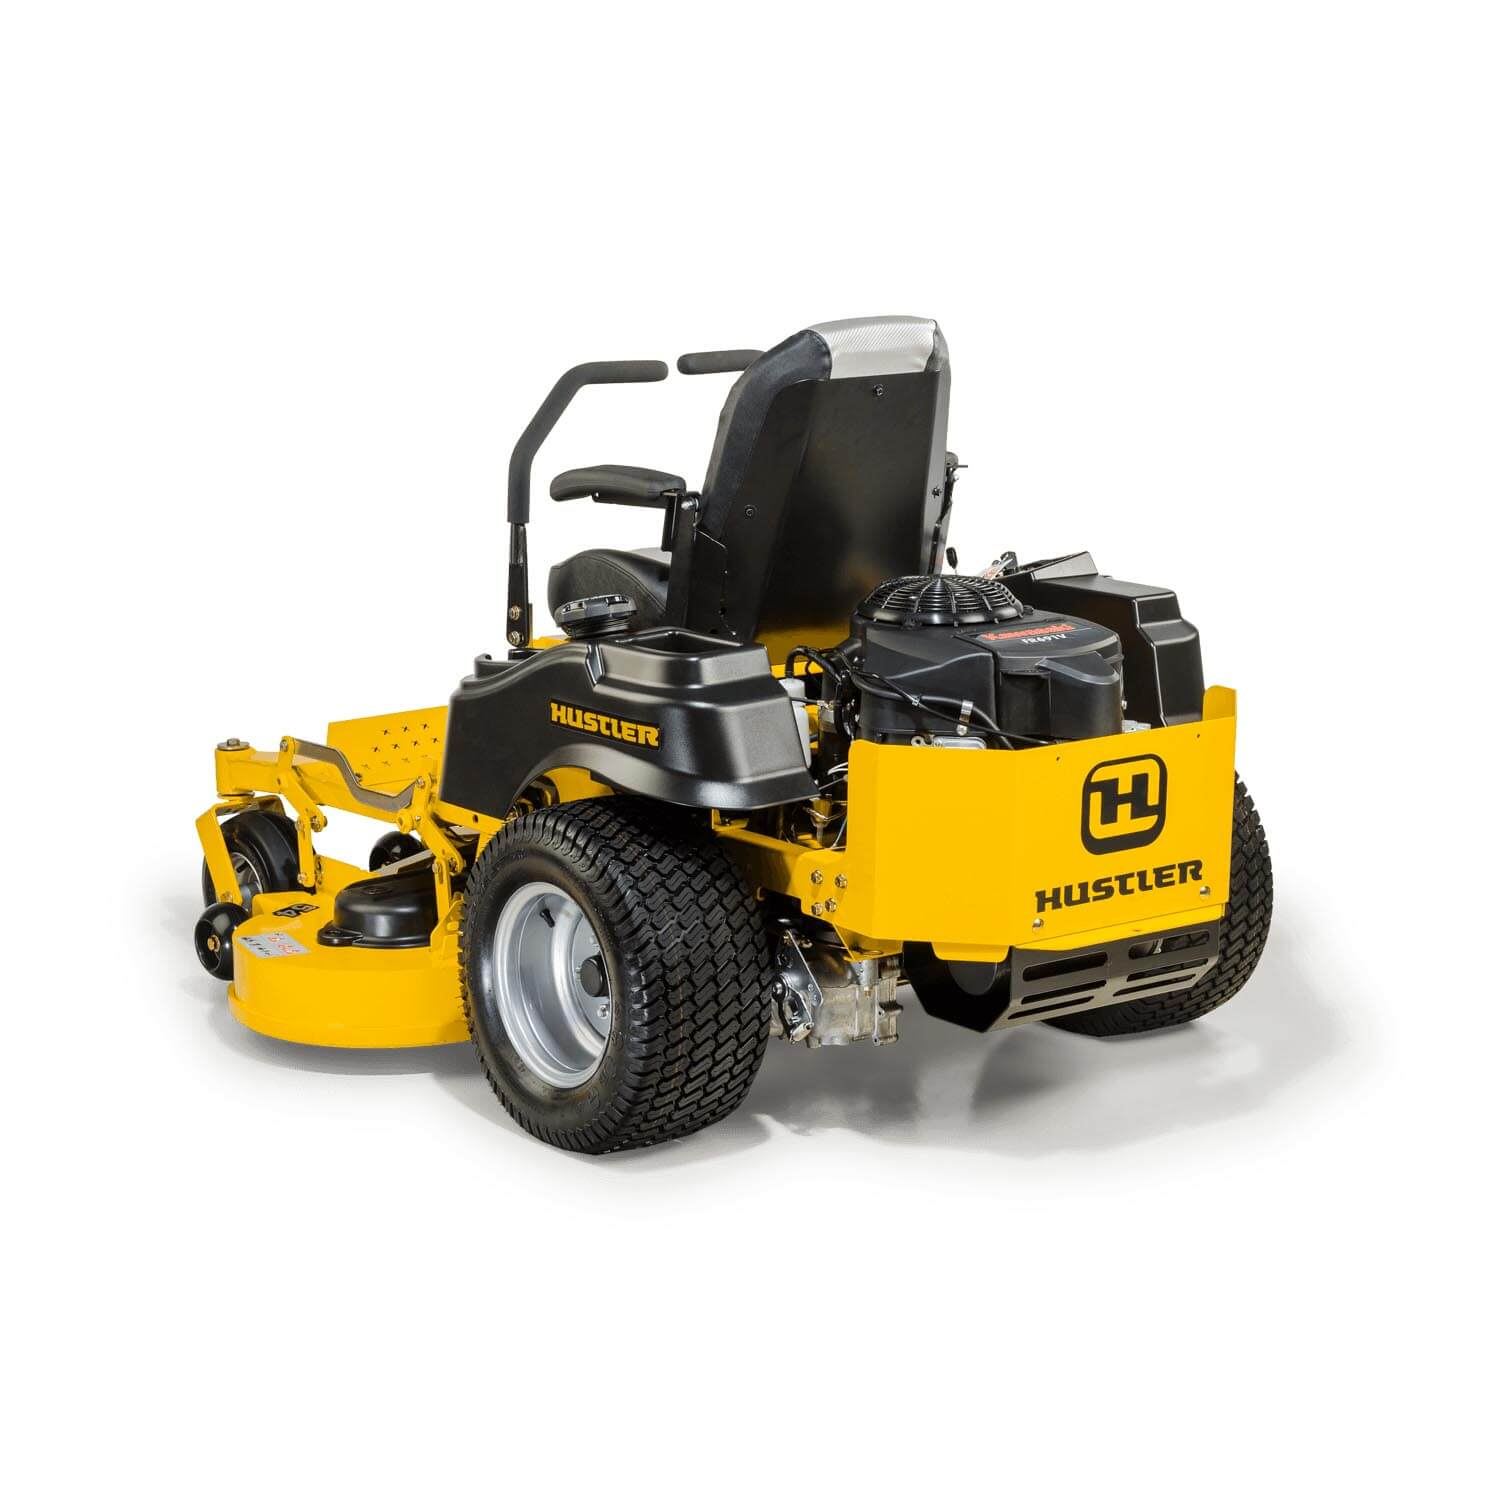 Image of the rear three quarters of a yellow riding mower